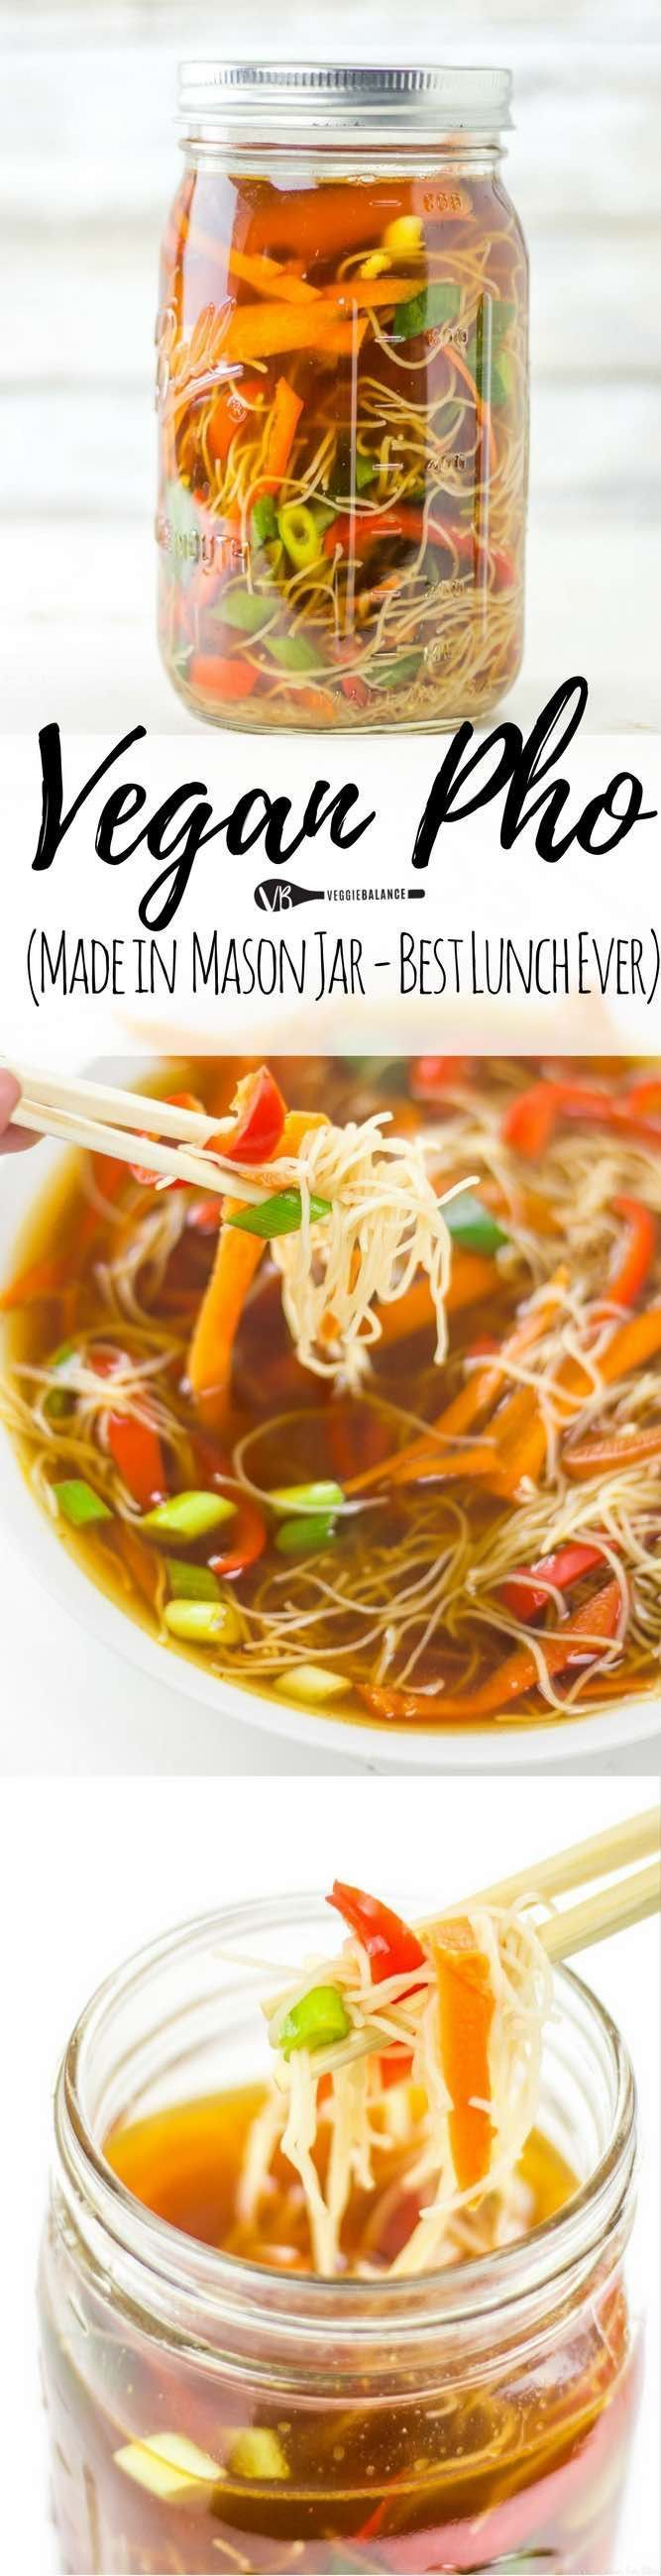 Pho Soup Made at Home in Mason Jars is perfect for those meal-prepping Sundays. Packed with vegetables, rice noodles and soothingly warm liquid you'll be looking forward to for lunch. (Gluten Free, Da (Gluten Free Recipes Rice)